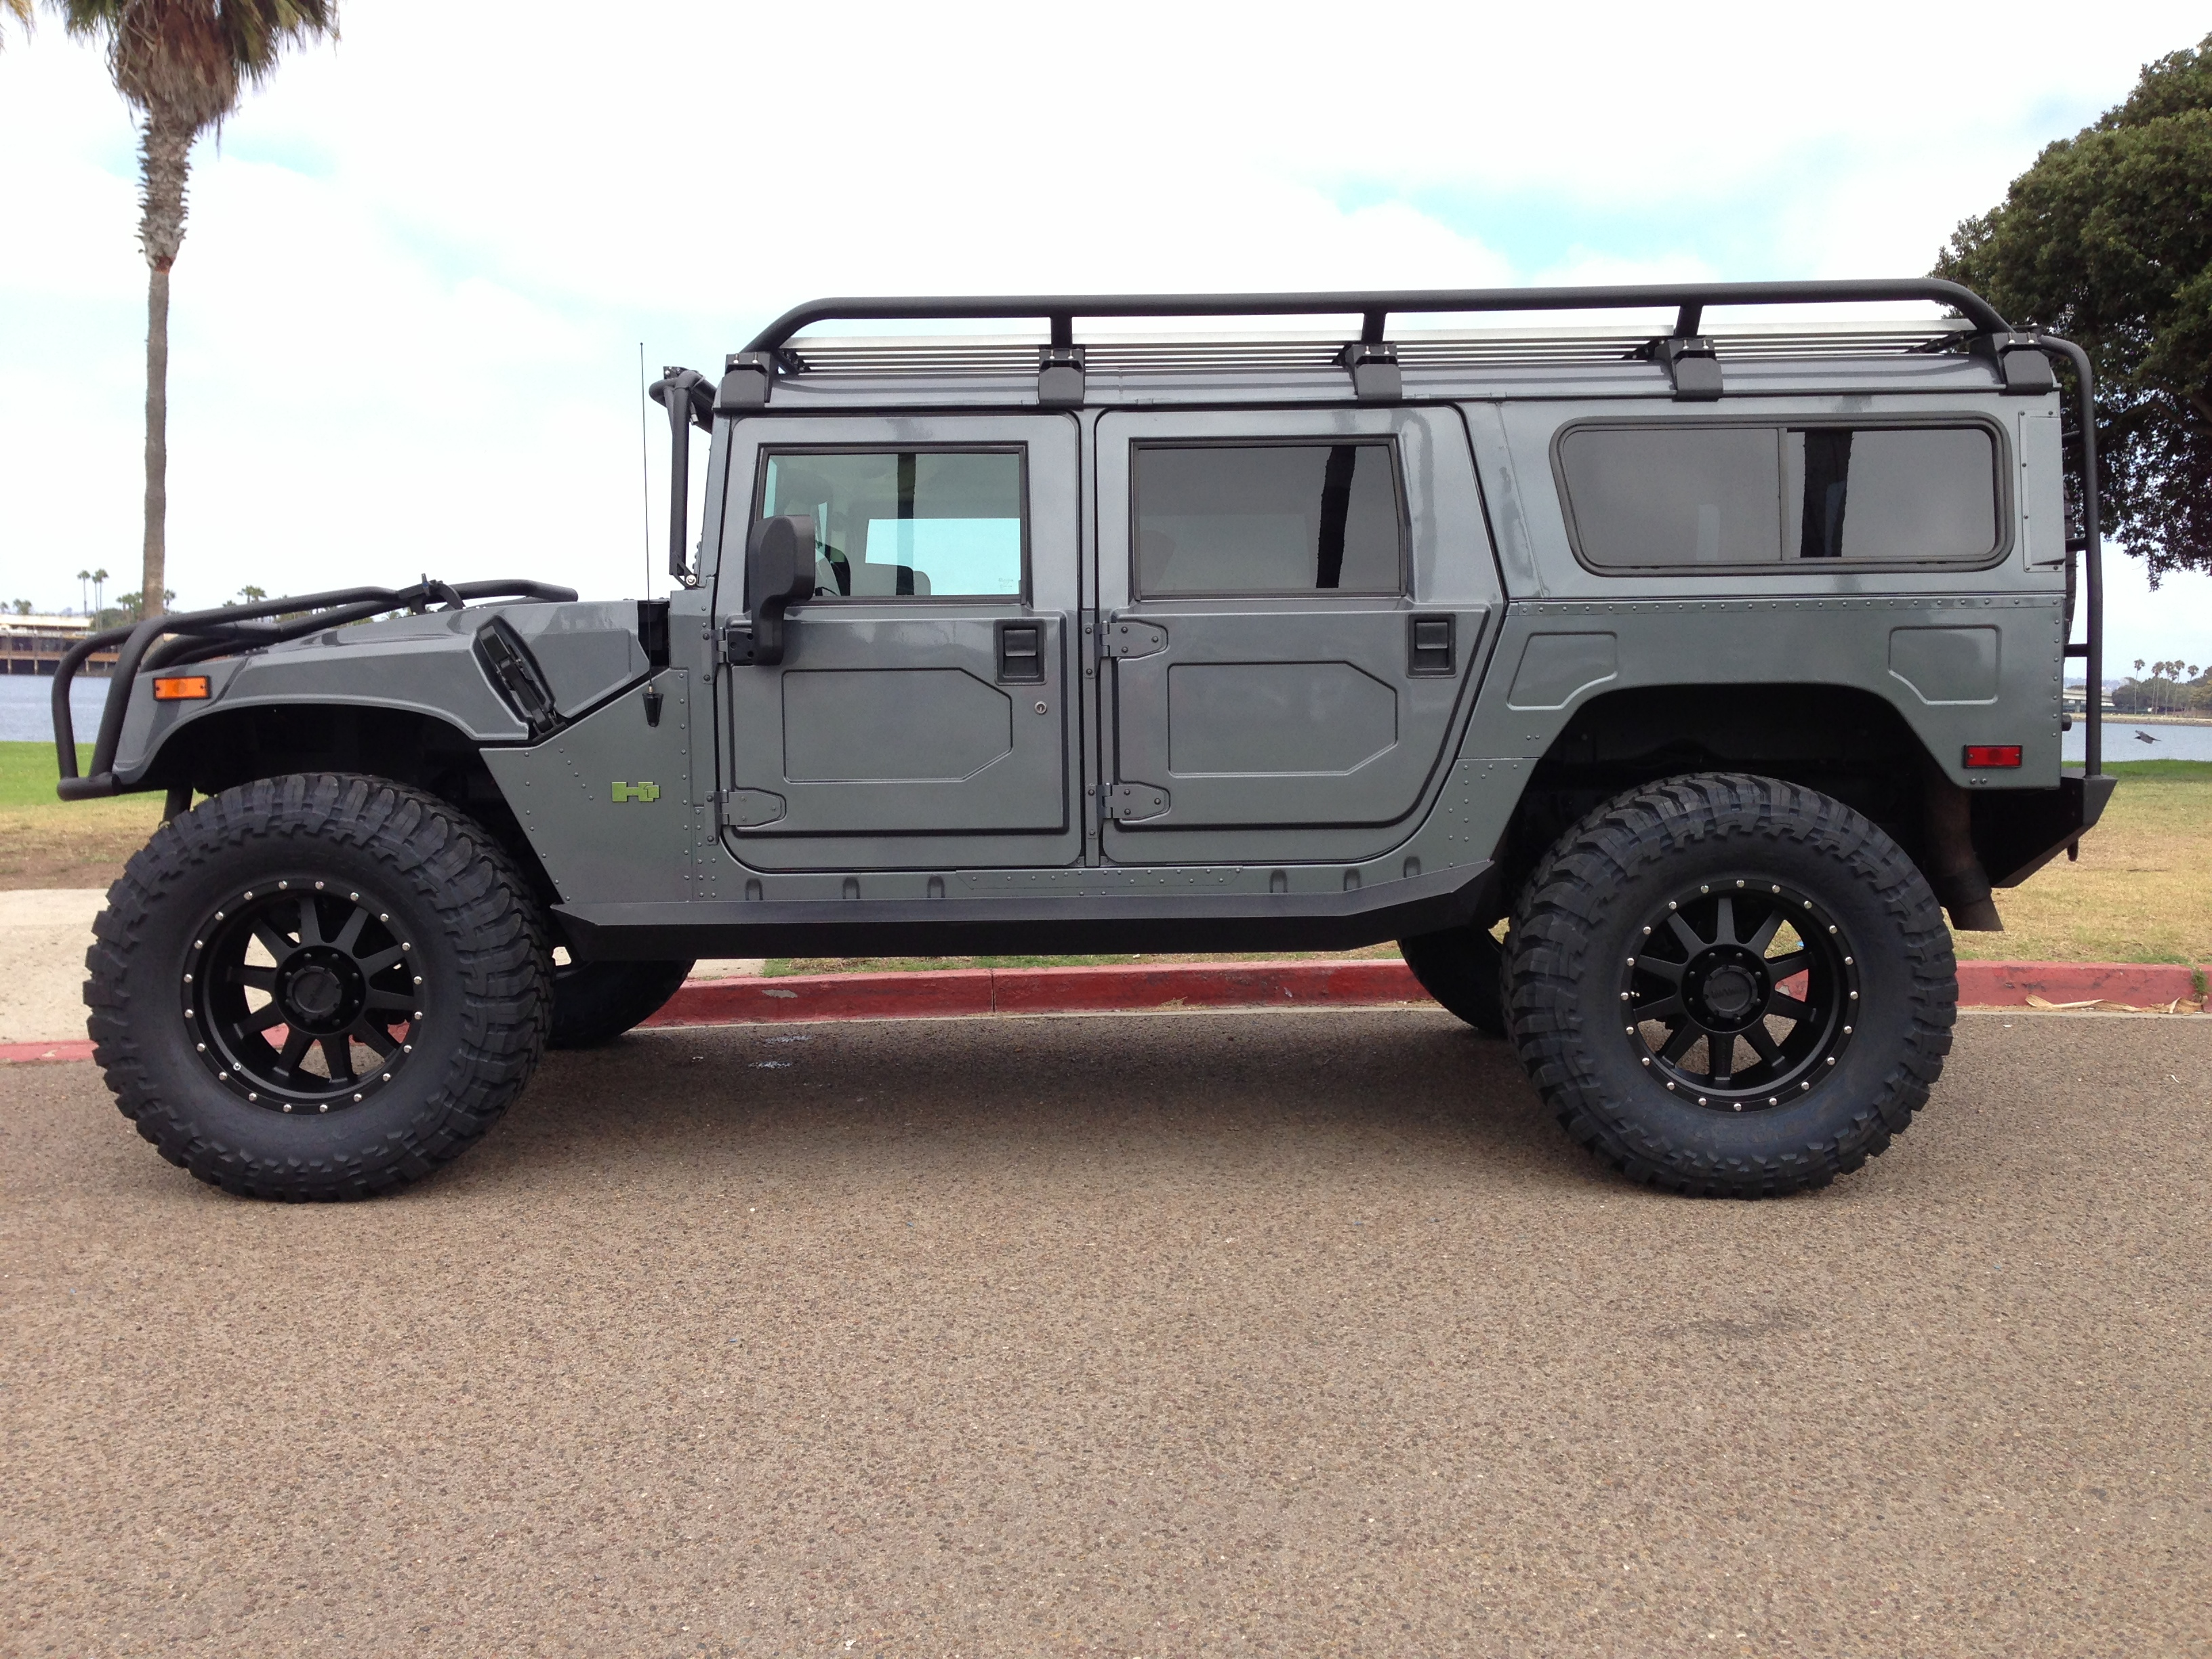 hummer h1 alpha wagon for sale « The Hummer Guy